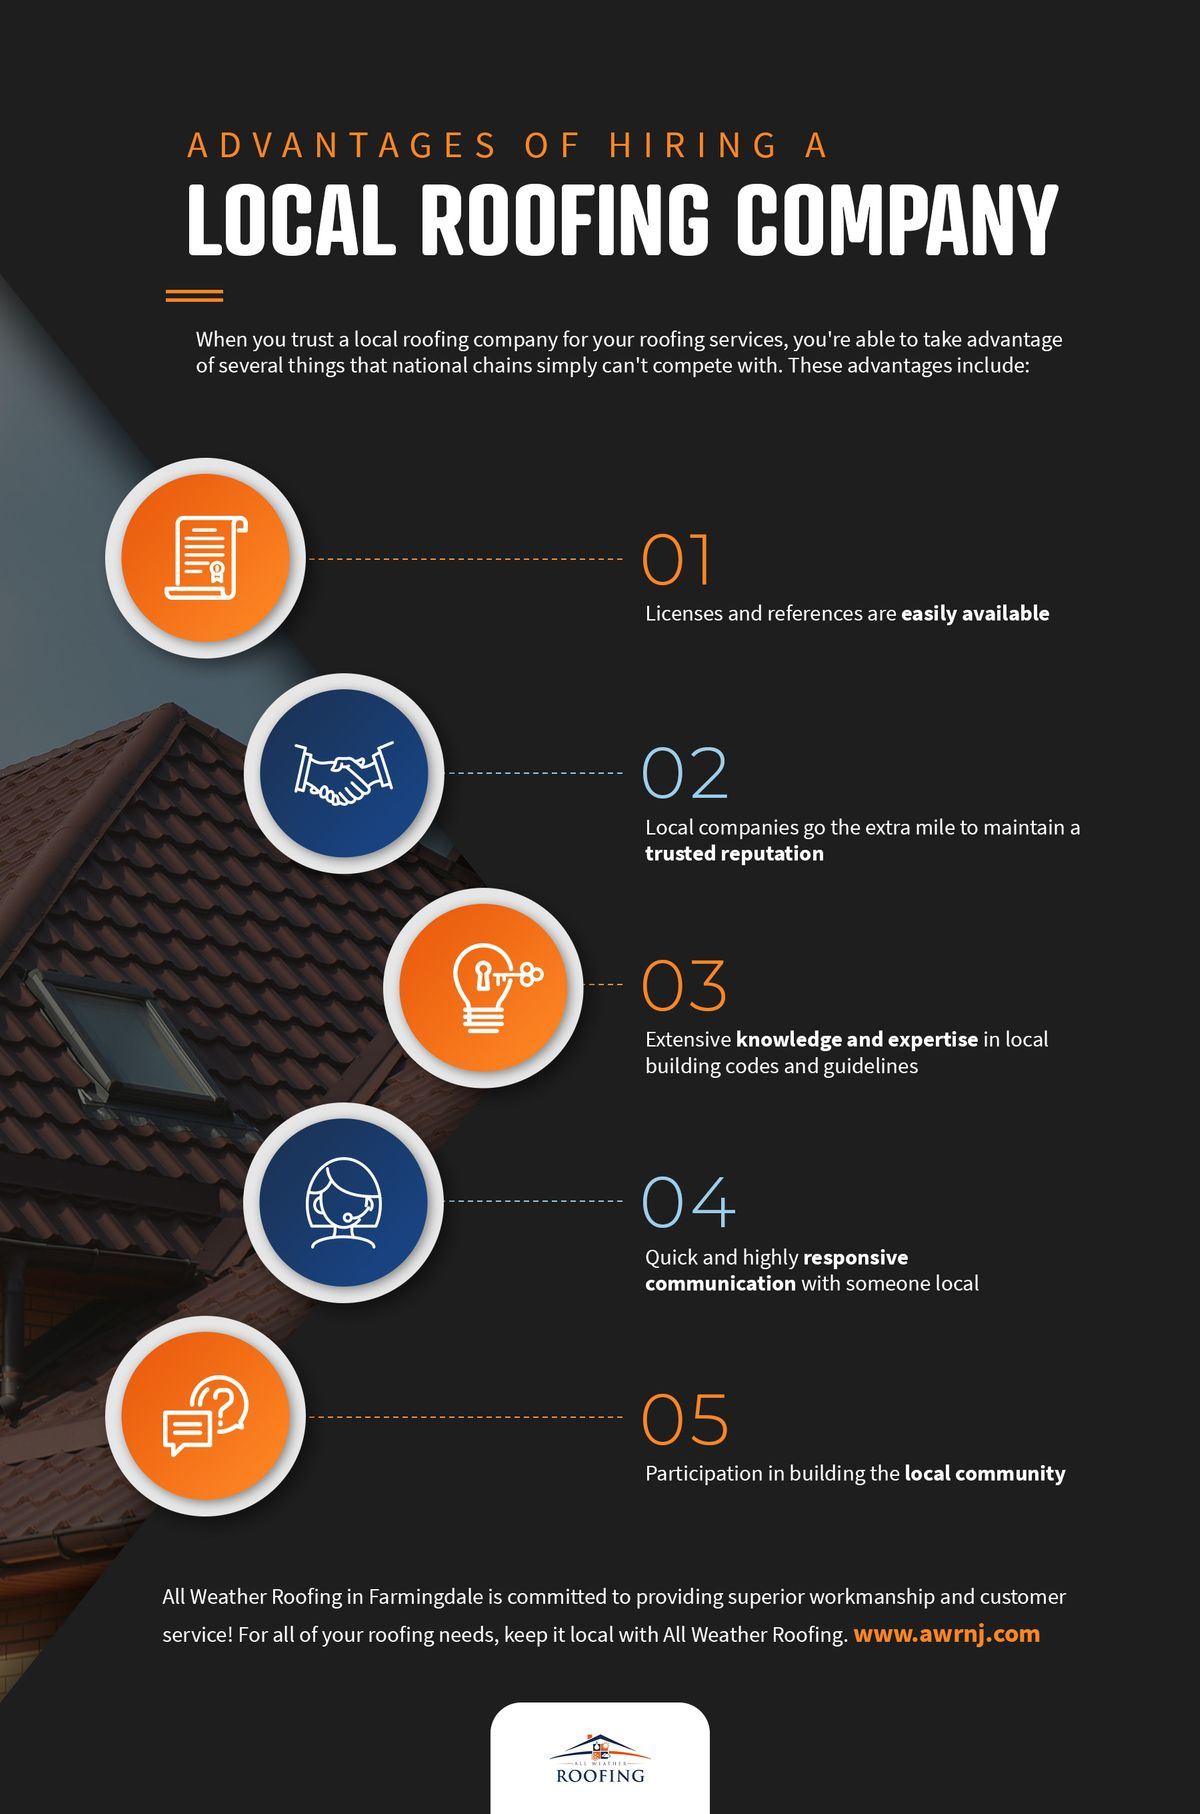 Advantages-of-Hiring-a-Local-Roofing-Company_Infographic.jpg